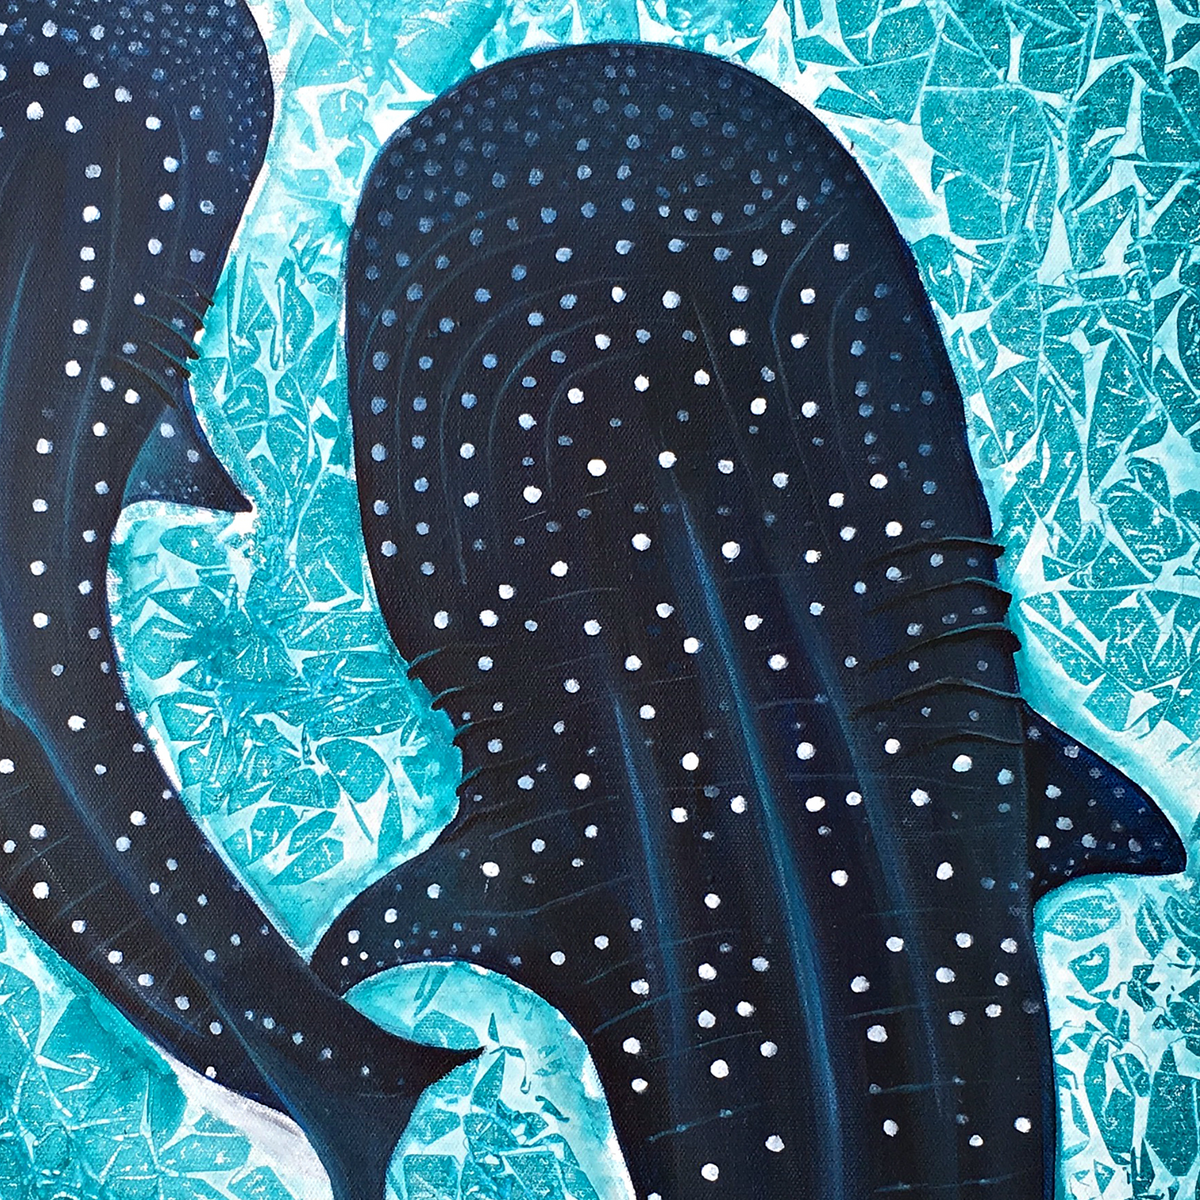 'Fehu'rihi' Whale Shark Original Painting